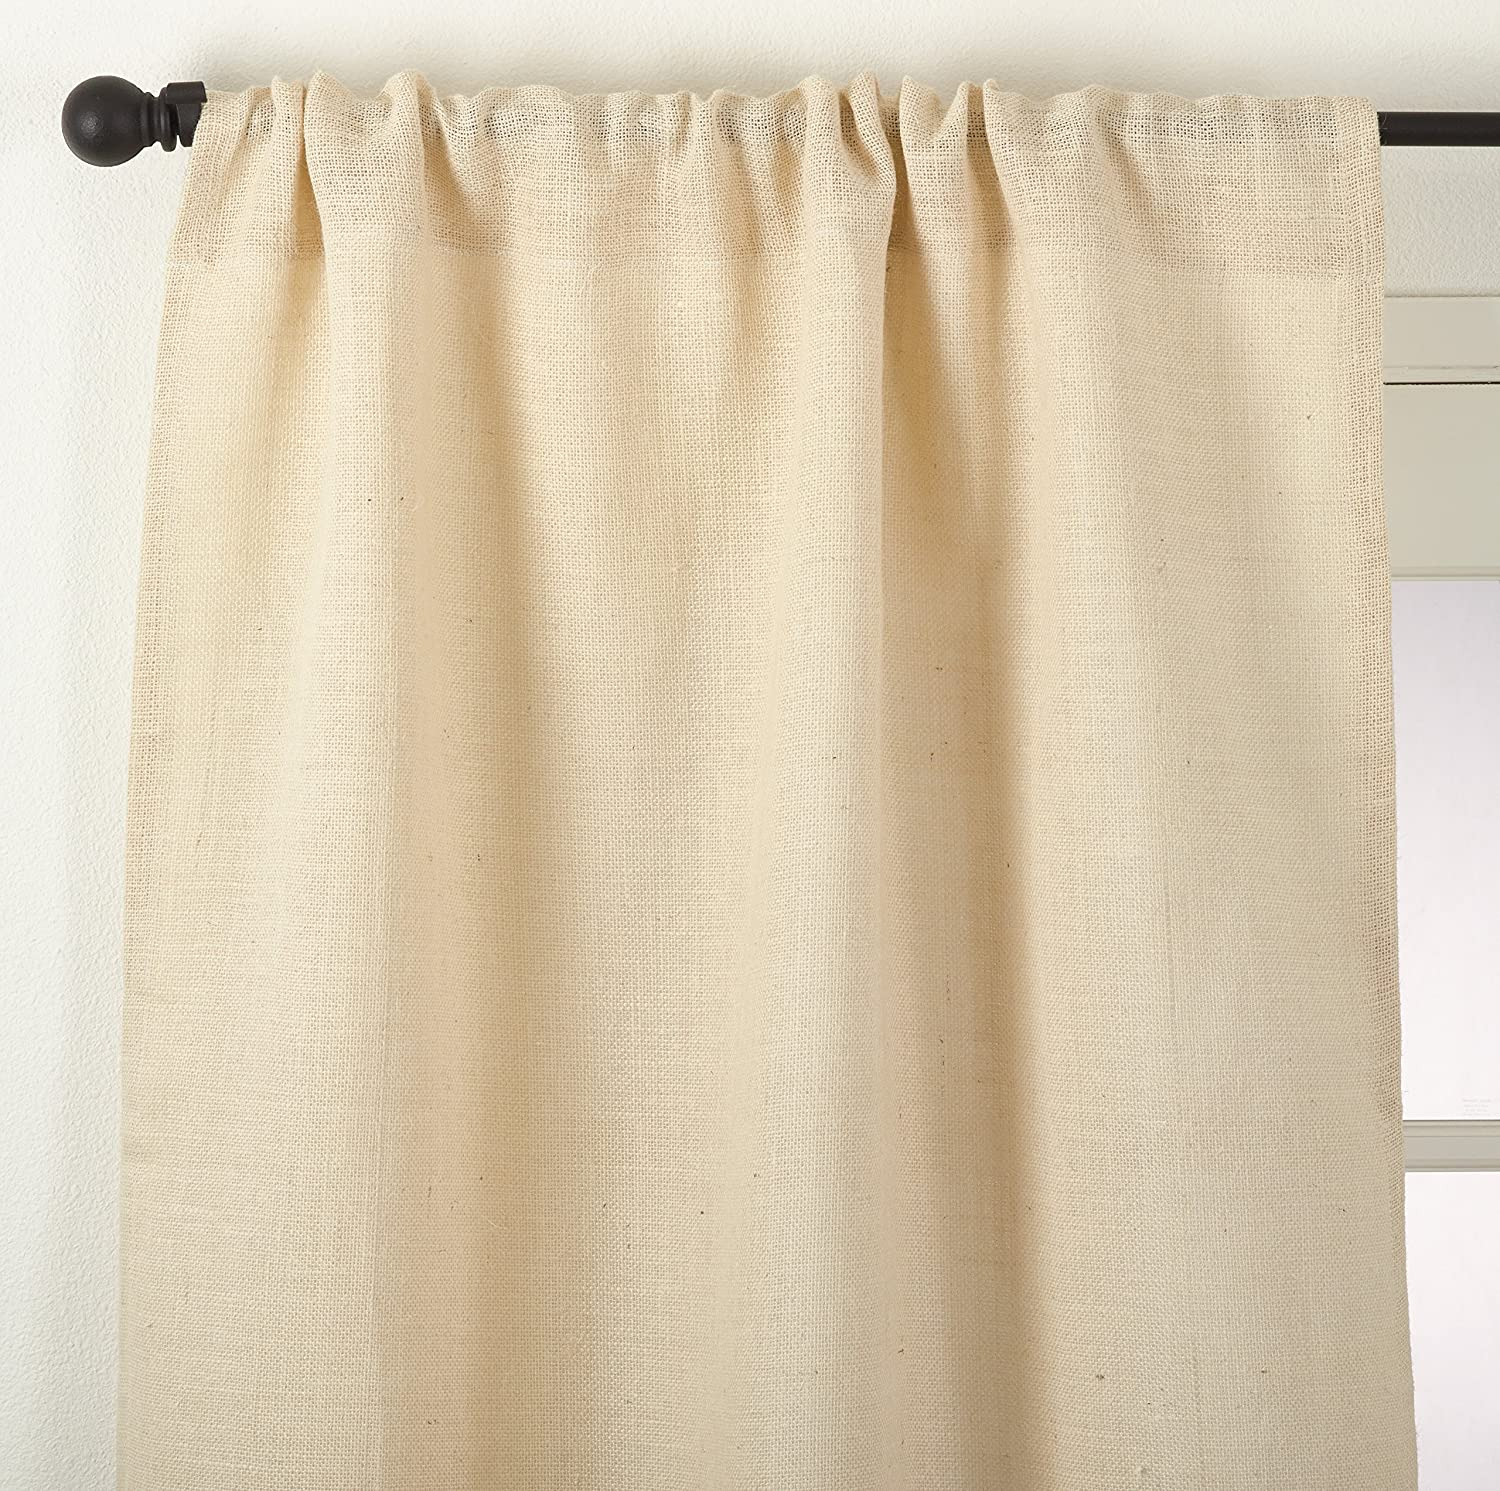 Natural 42 x 84 SARO LIFESTYLE Rustic Farmhouse Style Burlap Jute Lined Curtain Panel//0811.N4284 42 x 84